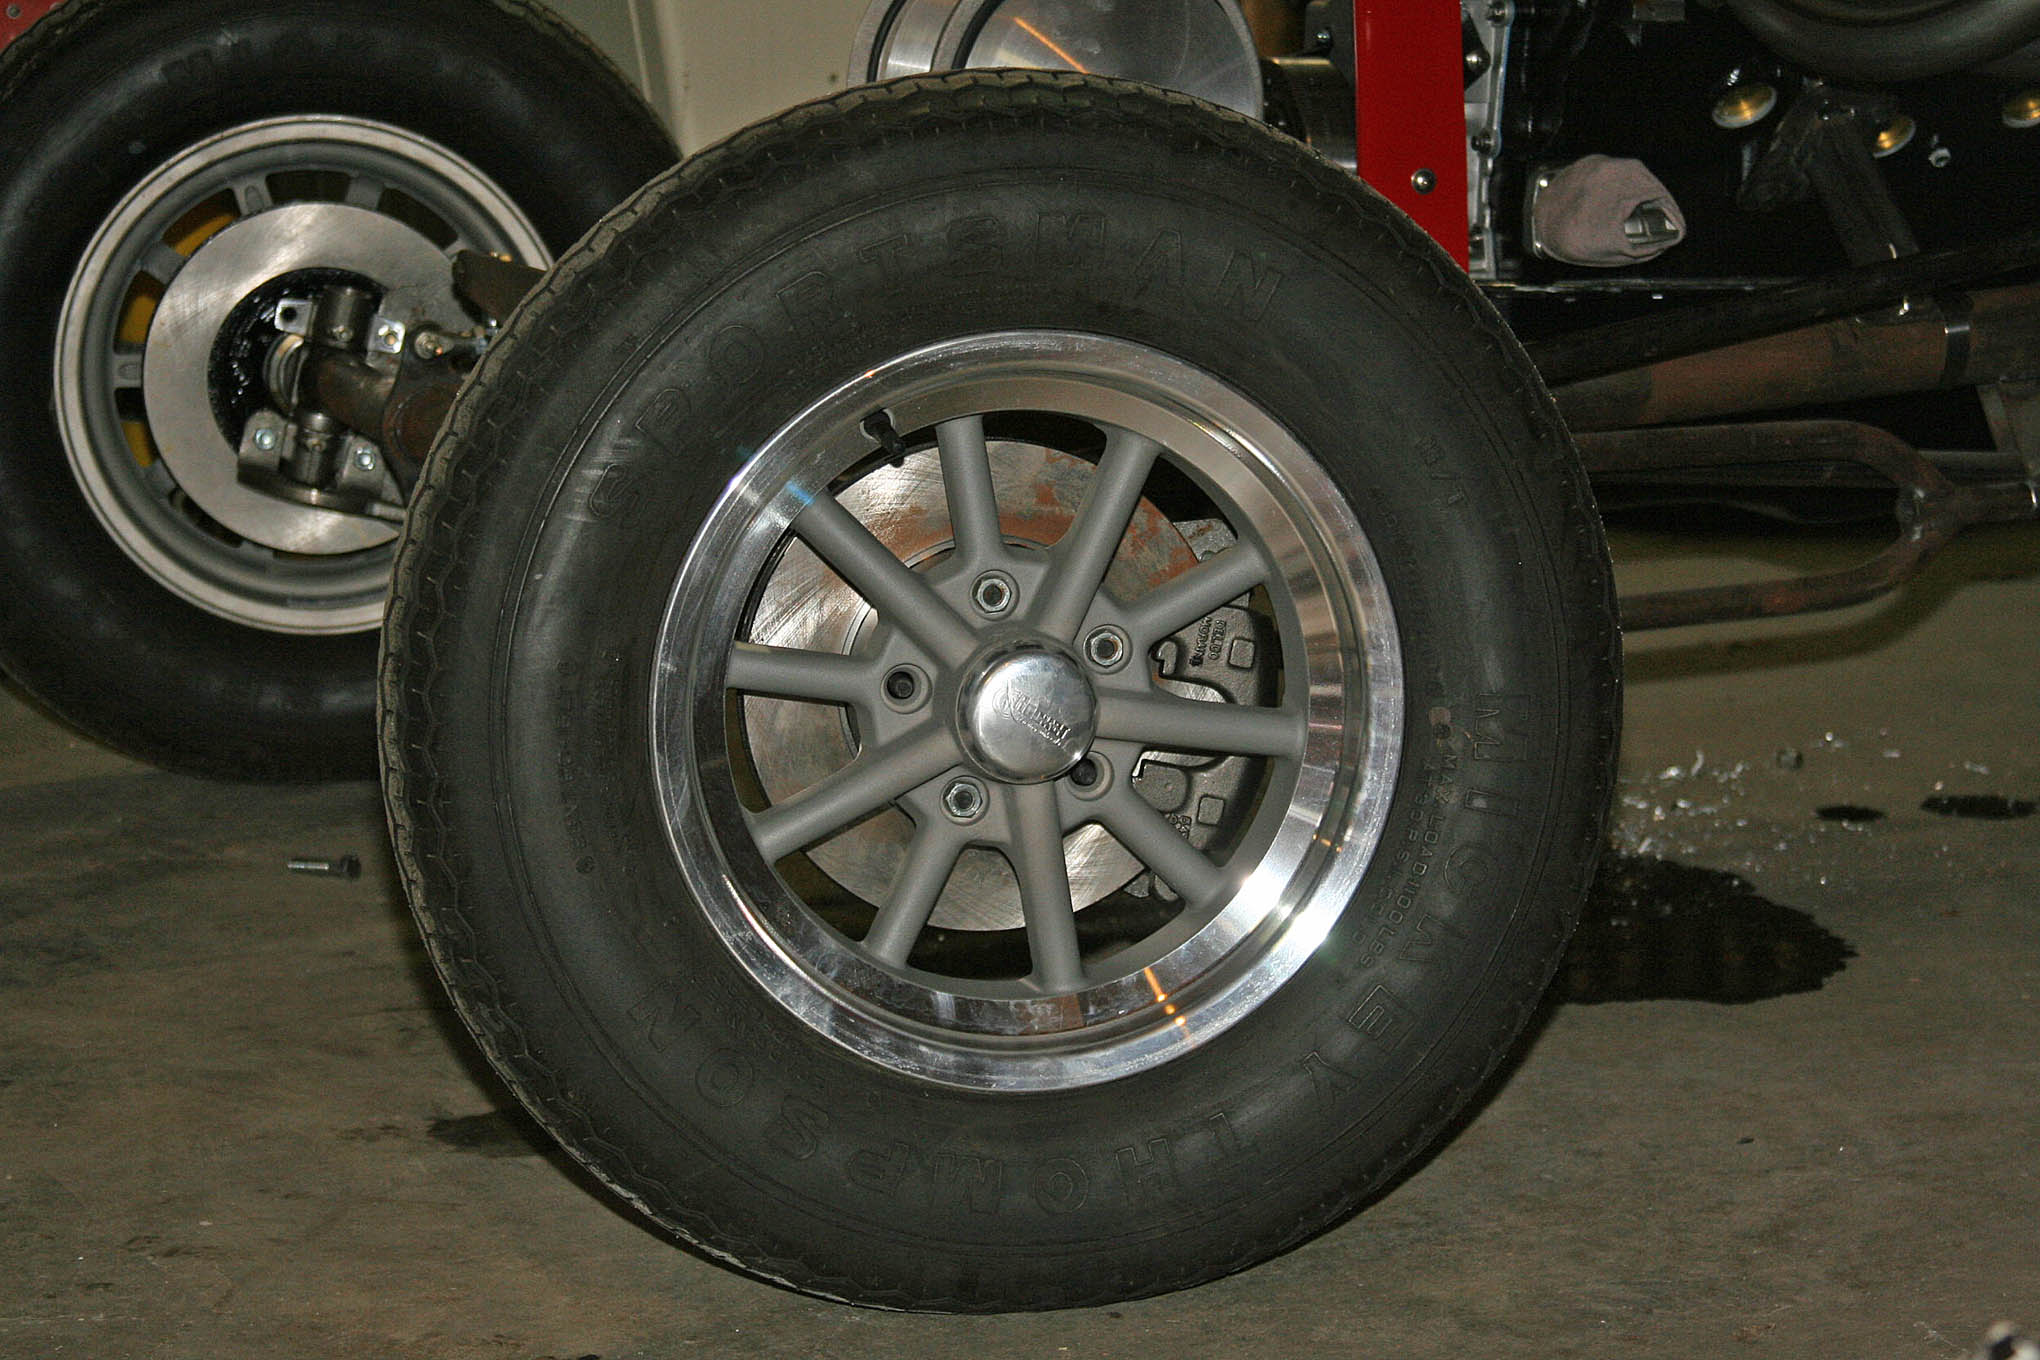 The original number 78 had 15-inch magnesium spindle-mounts up front with polished outer rims. Being a fan of stopping, we opted for front brakes, and our Ron Pope Motorsports front axle kit uses second-gen F-body rotors, calipers, and soft lines. Rocket Racing Wheels has the perfect substitute with its 15x4.5-inch Rocket Launcher series. They offer all-gray, gray center with a polished rim, and fully-polished versions. We hung them with swap meet hoops, while a set of new M&H Racemasters and tubes wrapped the swap meet 15x8 Torq-Thrusts in back. The wheel/tire combos are absolutely ideal.